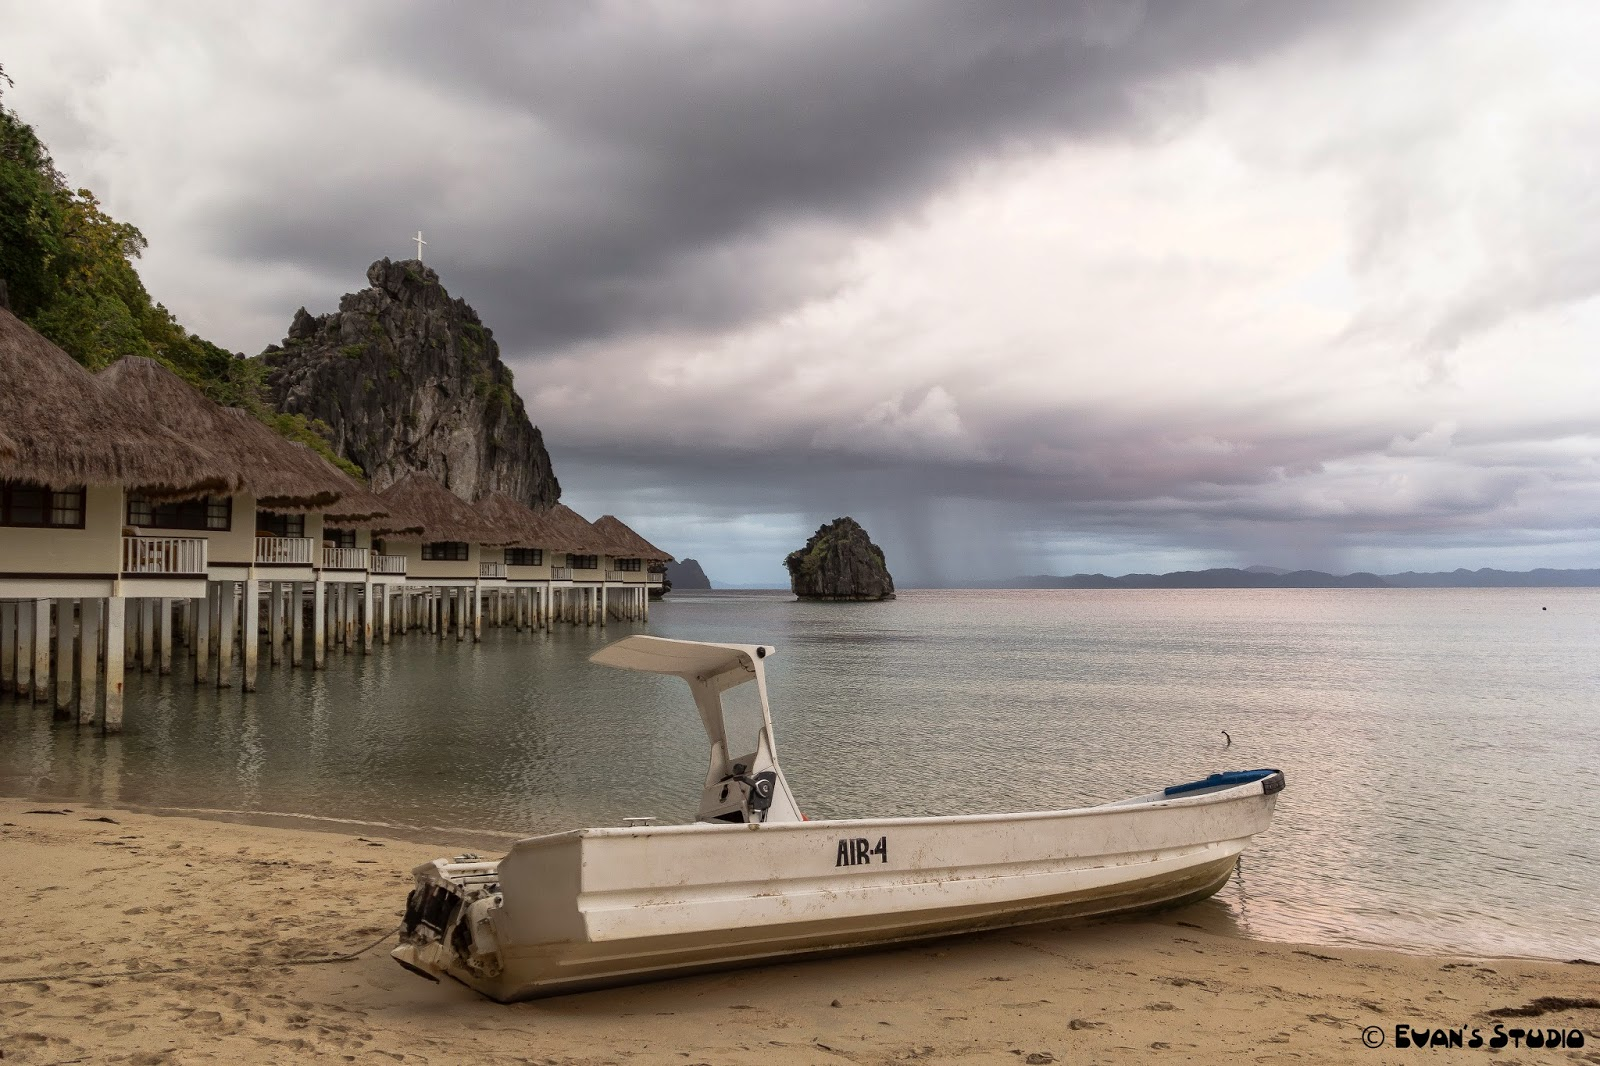 A storm is brewing beyond the Air4 boat at Apulit Island Resort, in the Philippines.